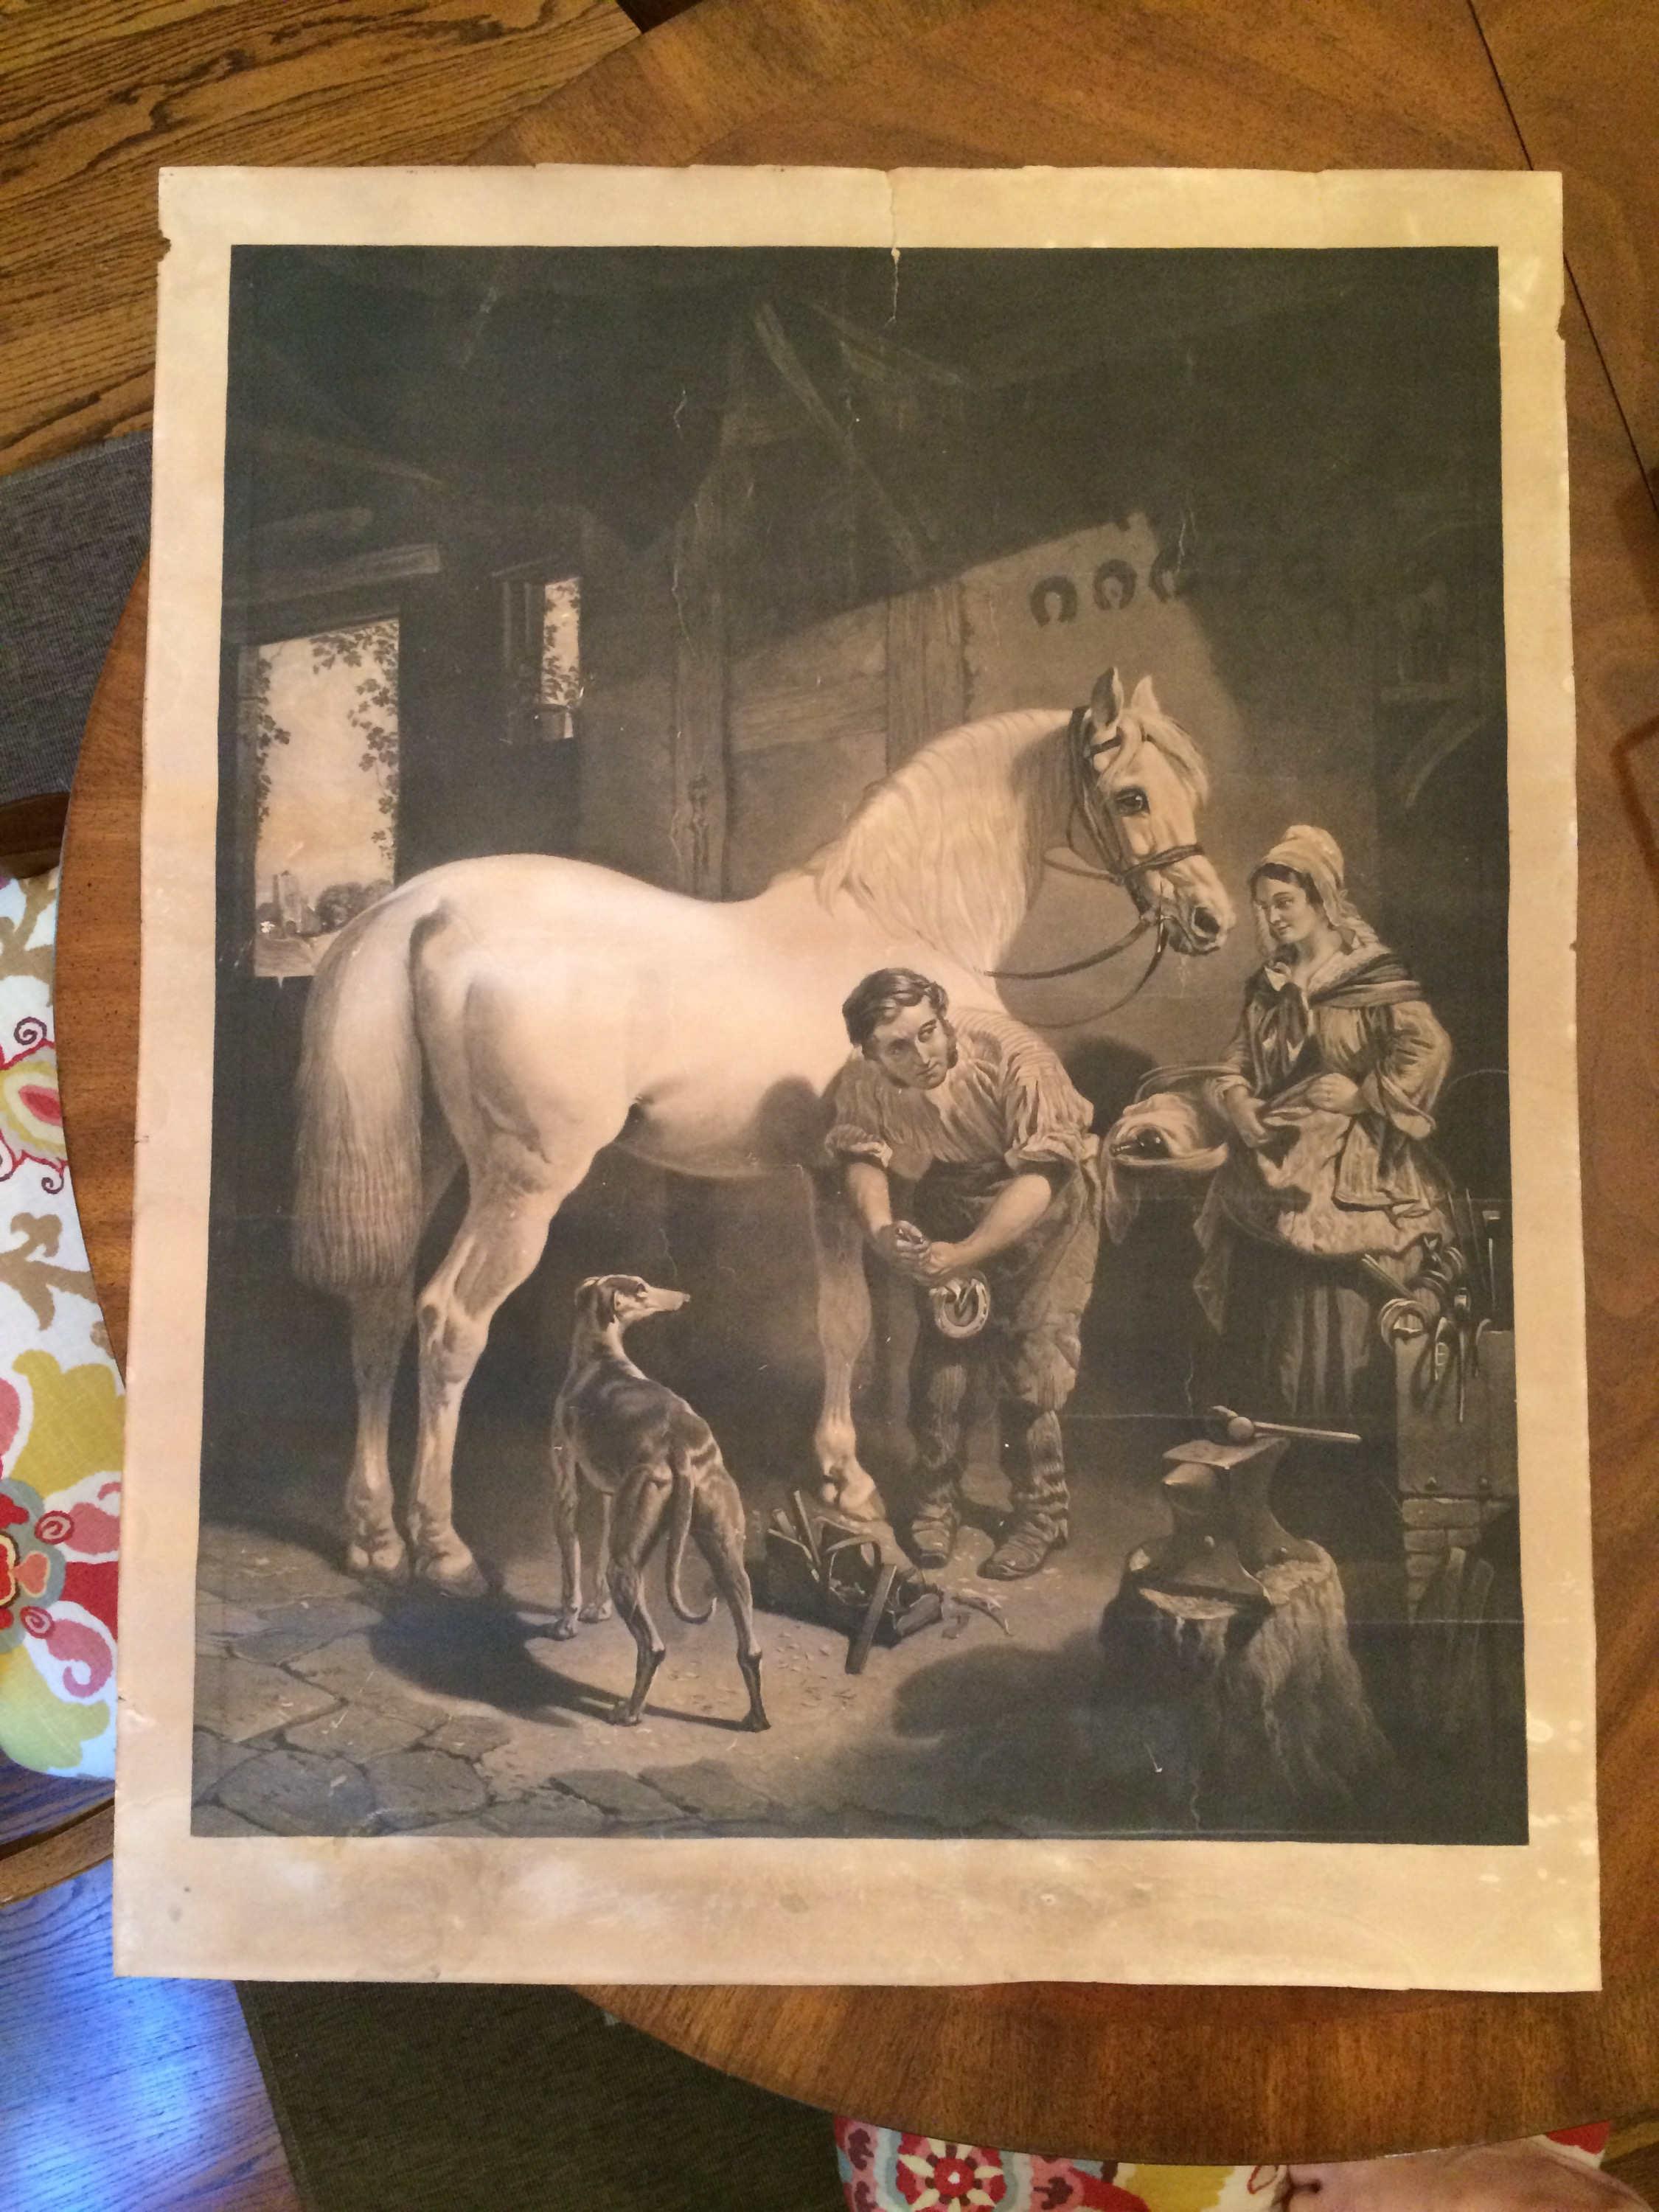 The Village Blacksmith by J. F. Herring - engraving created by George Patterson 1858